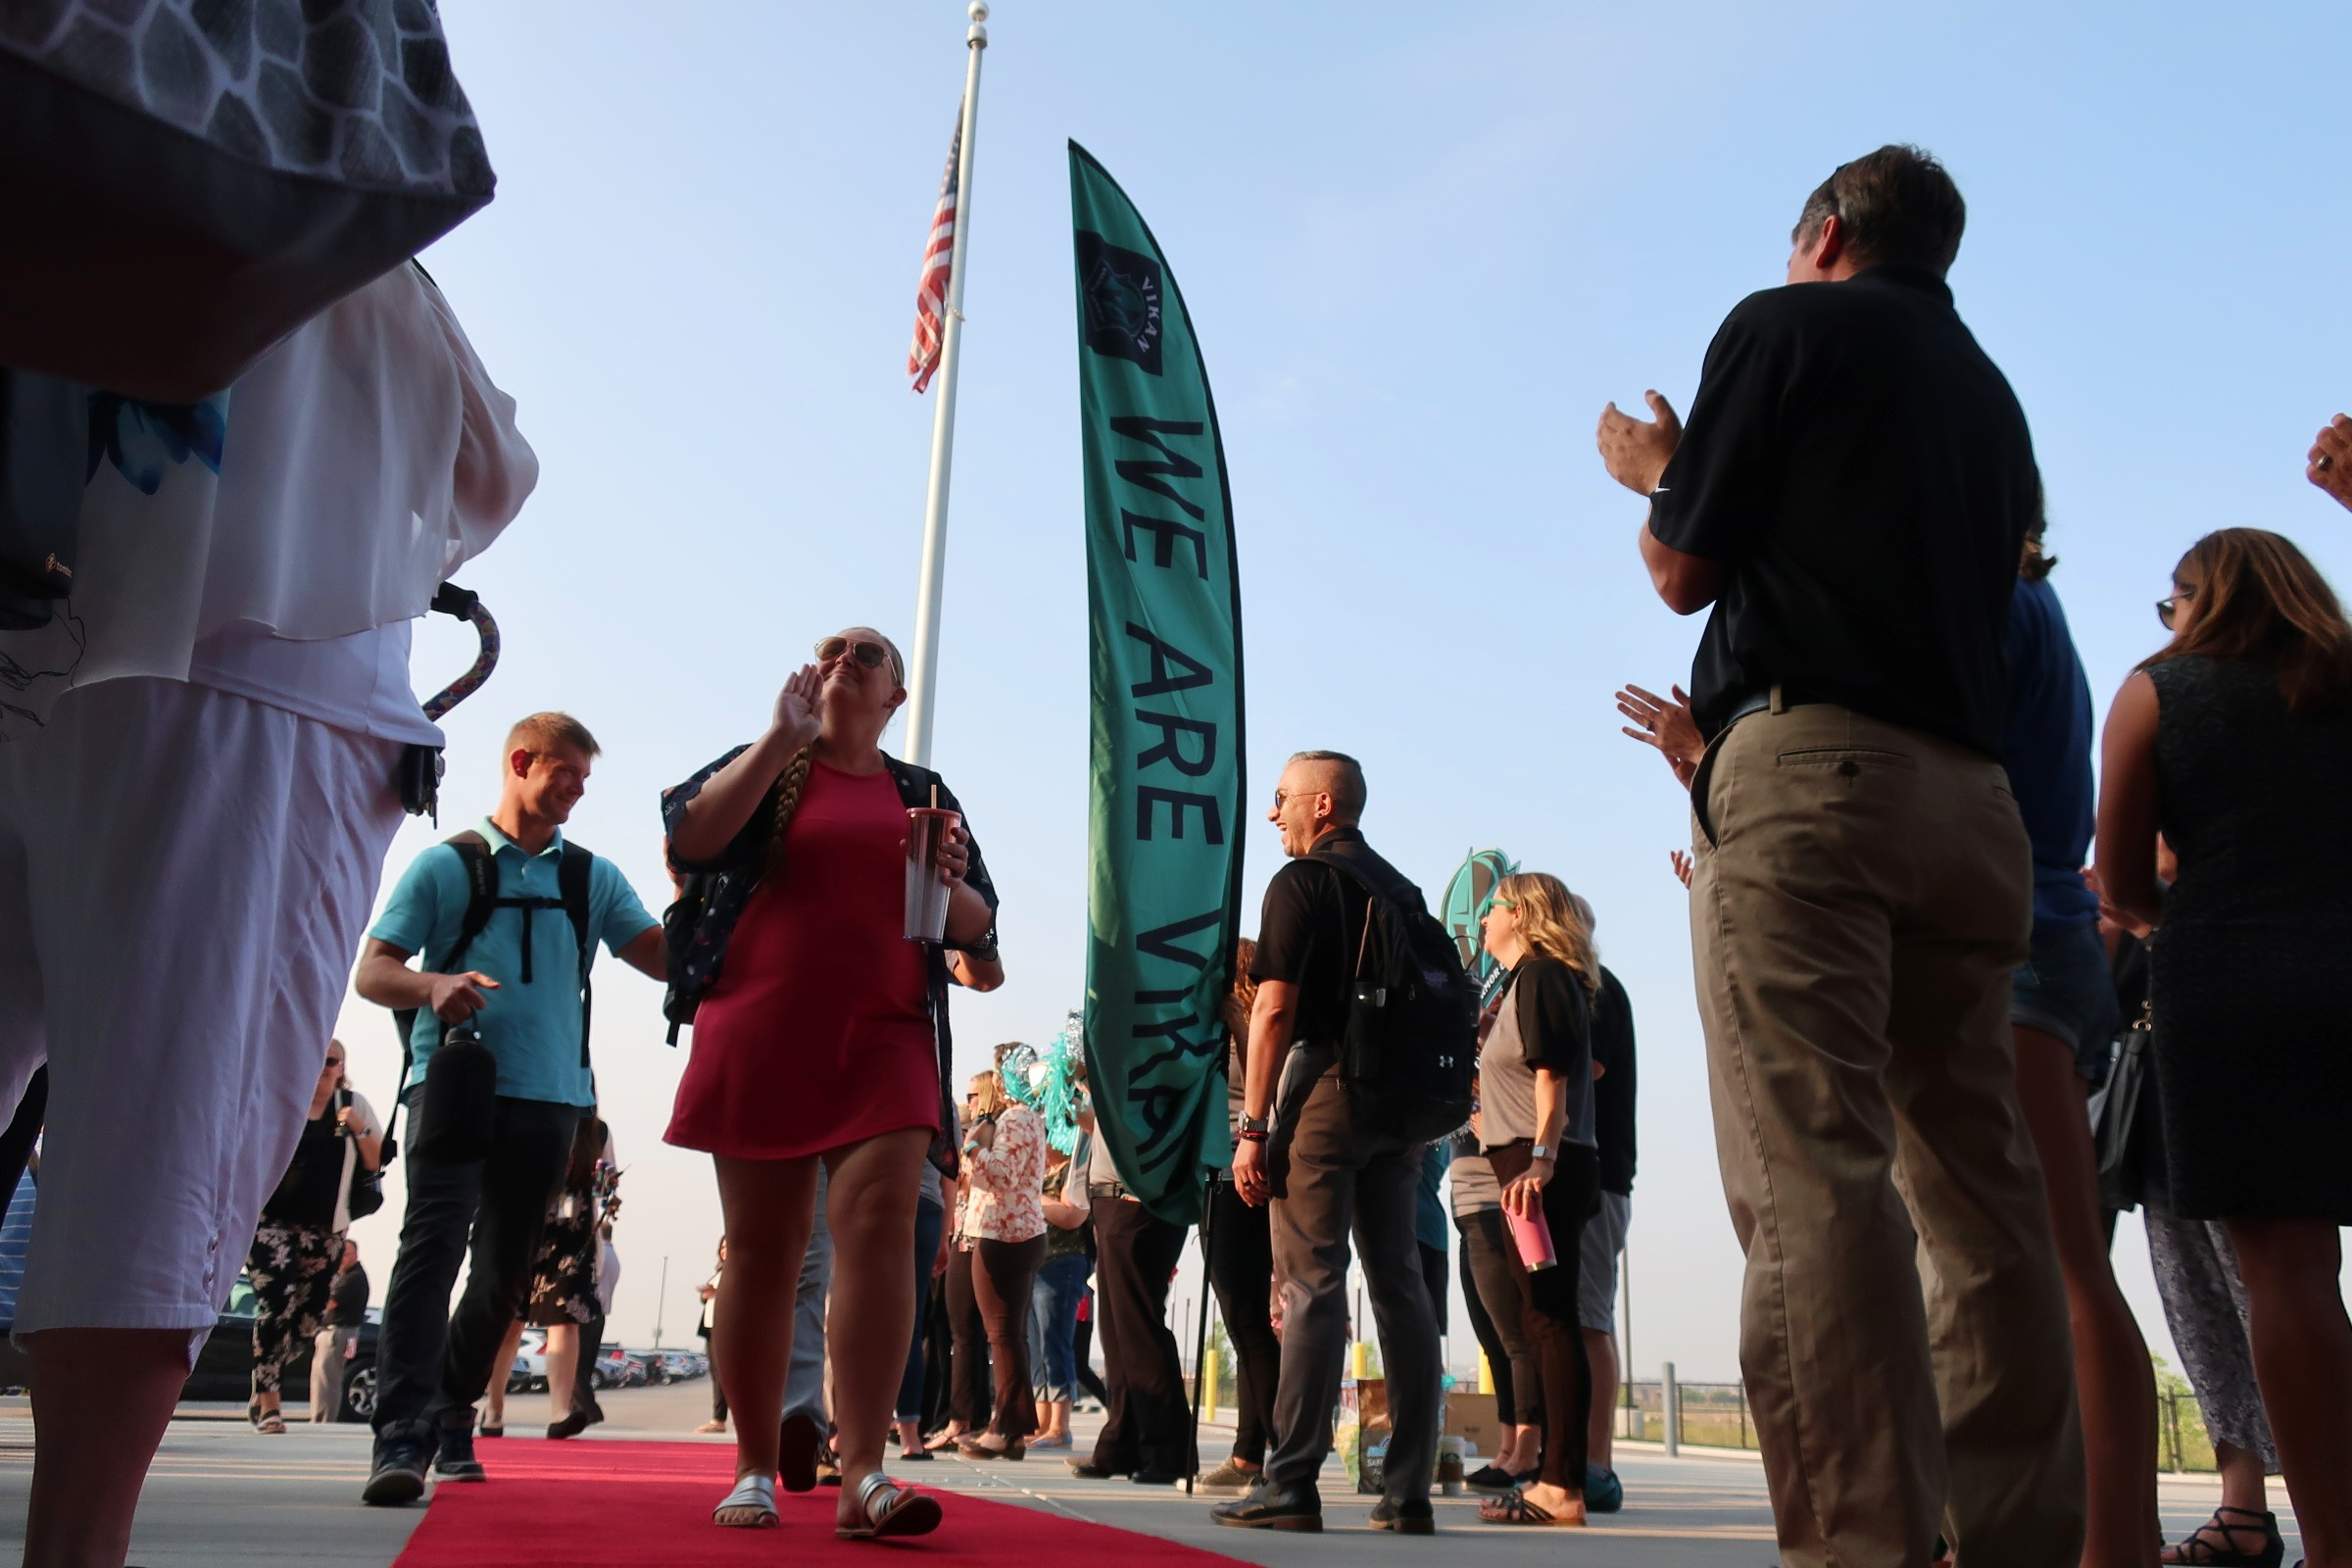 About 150 new teachers walk down the red carpet to cheering crowds on their first day of teacher orientation at the 27J school district. It was one inventive way districts are trying out to welcome and retain new teachers.